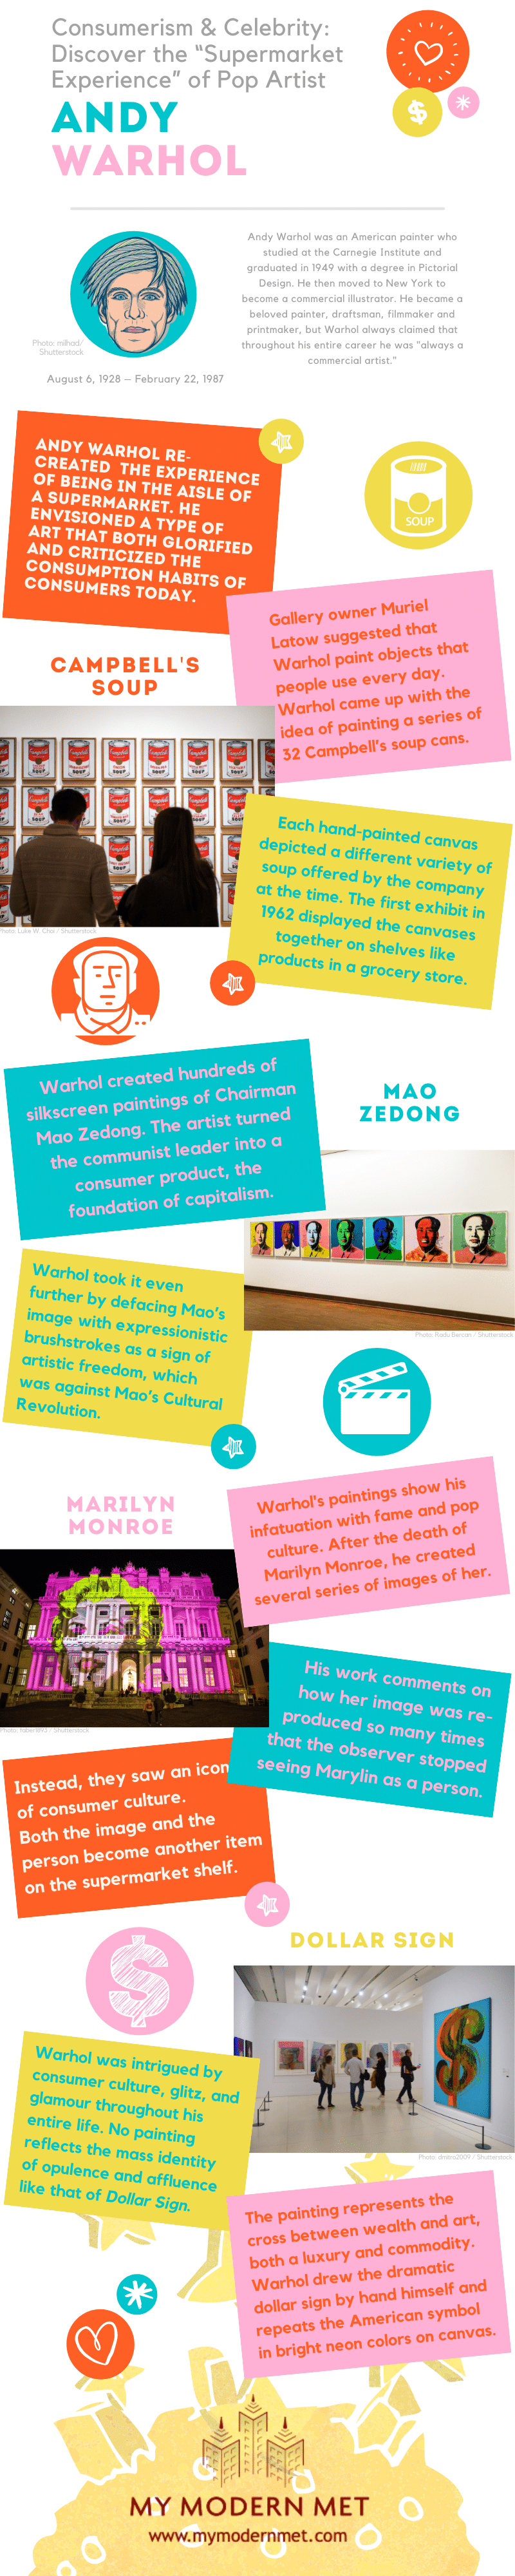 Andy Warhol Infographic